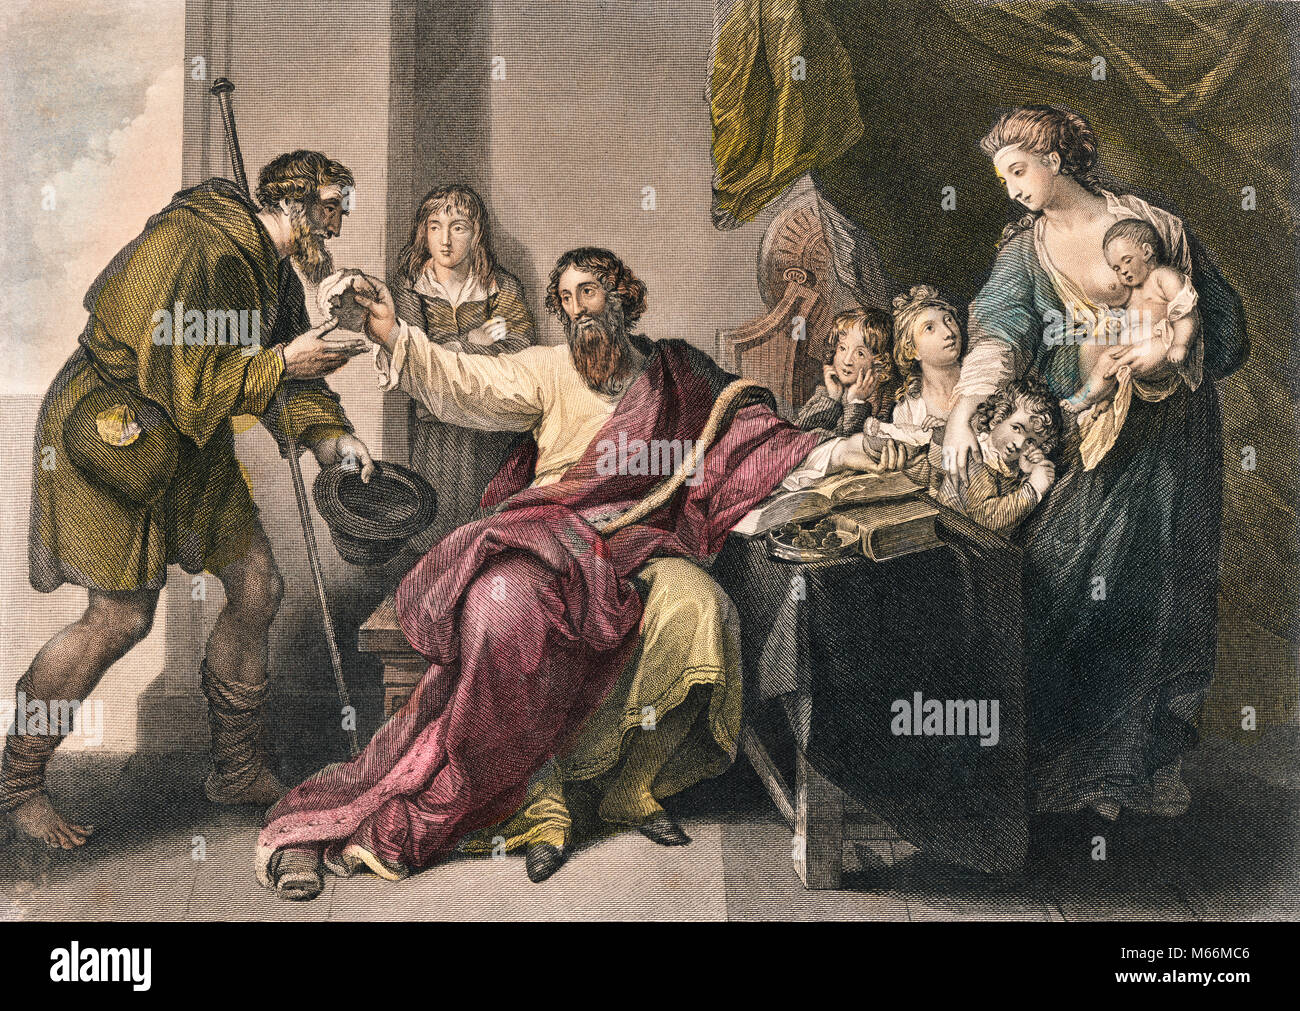 800s 878 ENGLISH KING ALFRED THE GREAT & FAMILY SHARE HALF LOAF BREAD WINE WITH PILGRIM SAINT CUTHBERT IN DISGUISE - Stock Image